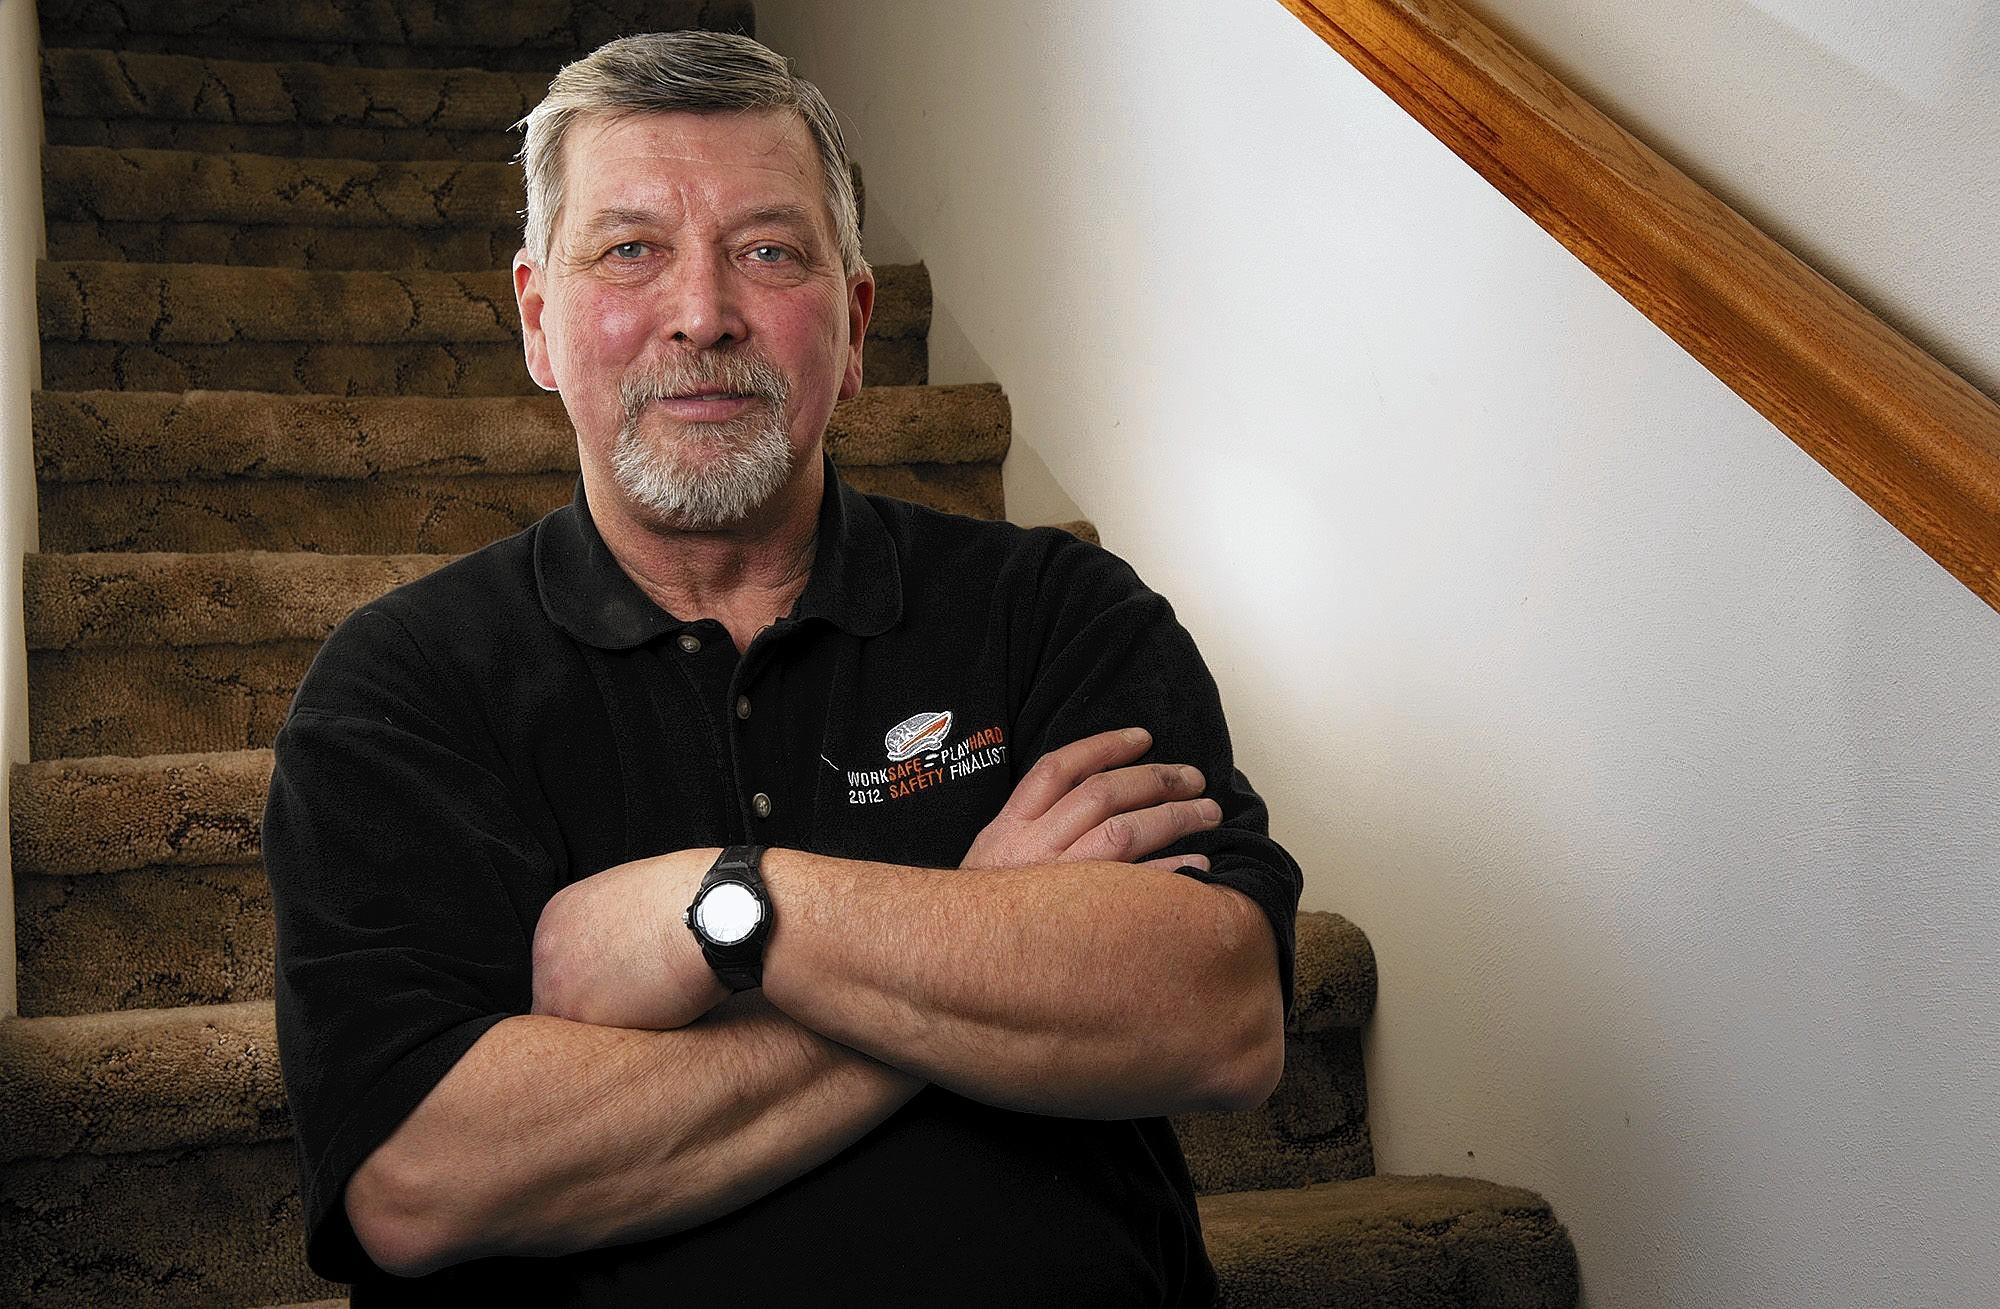 Dan DeWitt has been working in Granite City, Ill., for about 2 1/2 years.